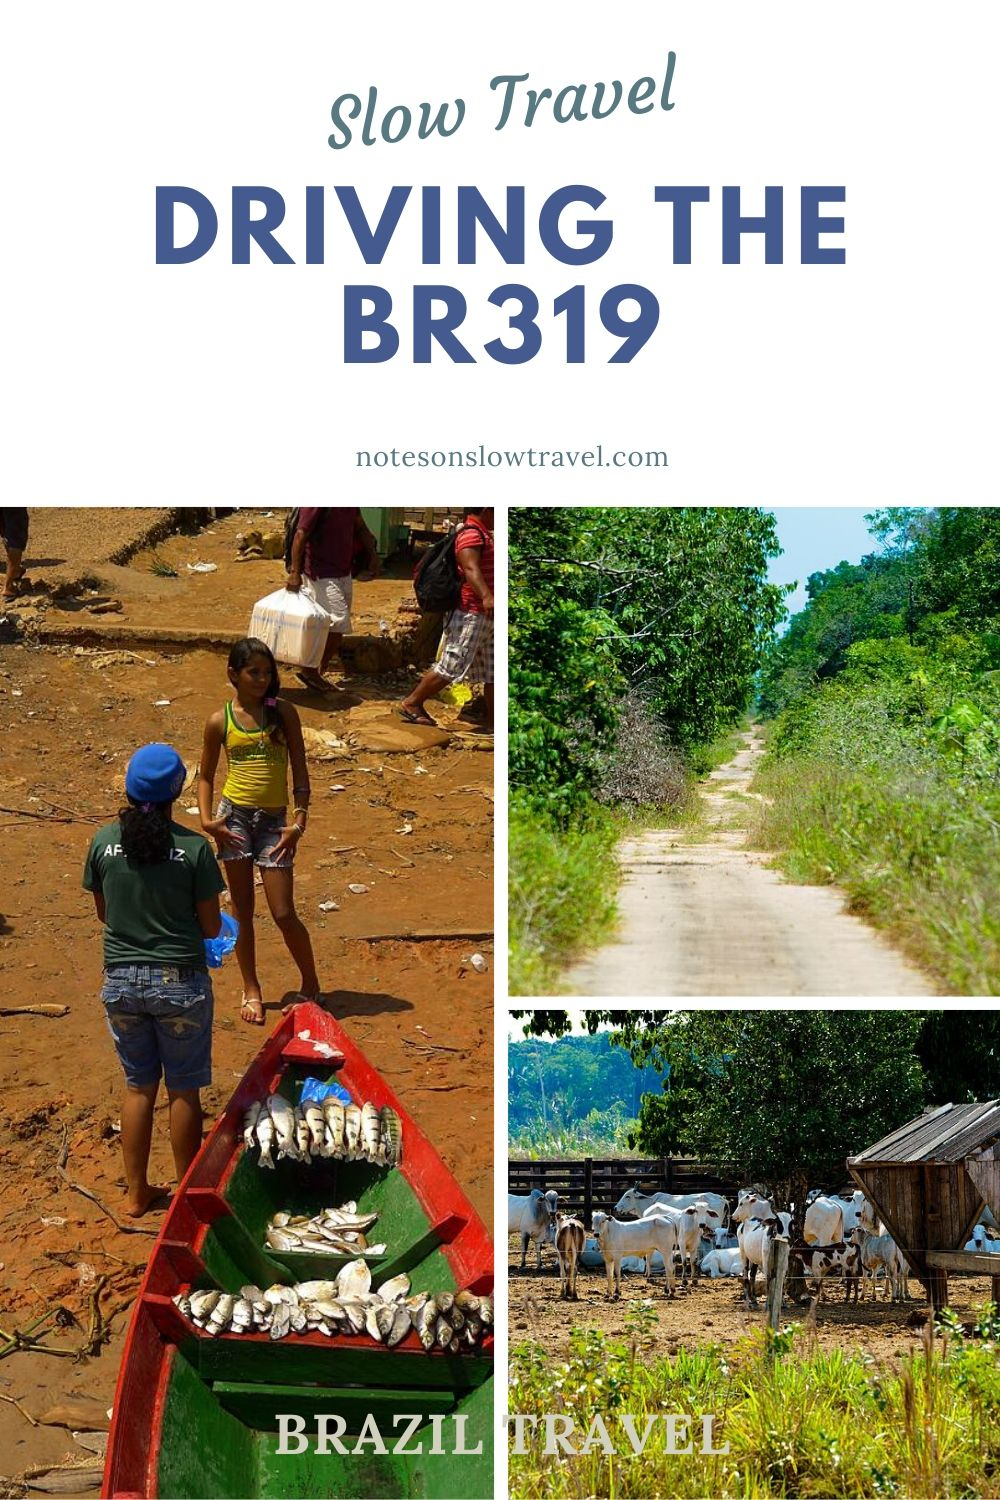 Slow Travel - Driving the BR319, Brazil